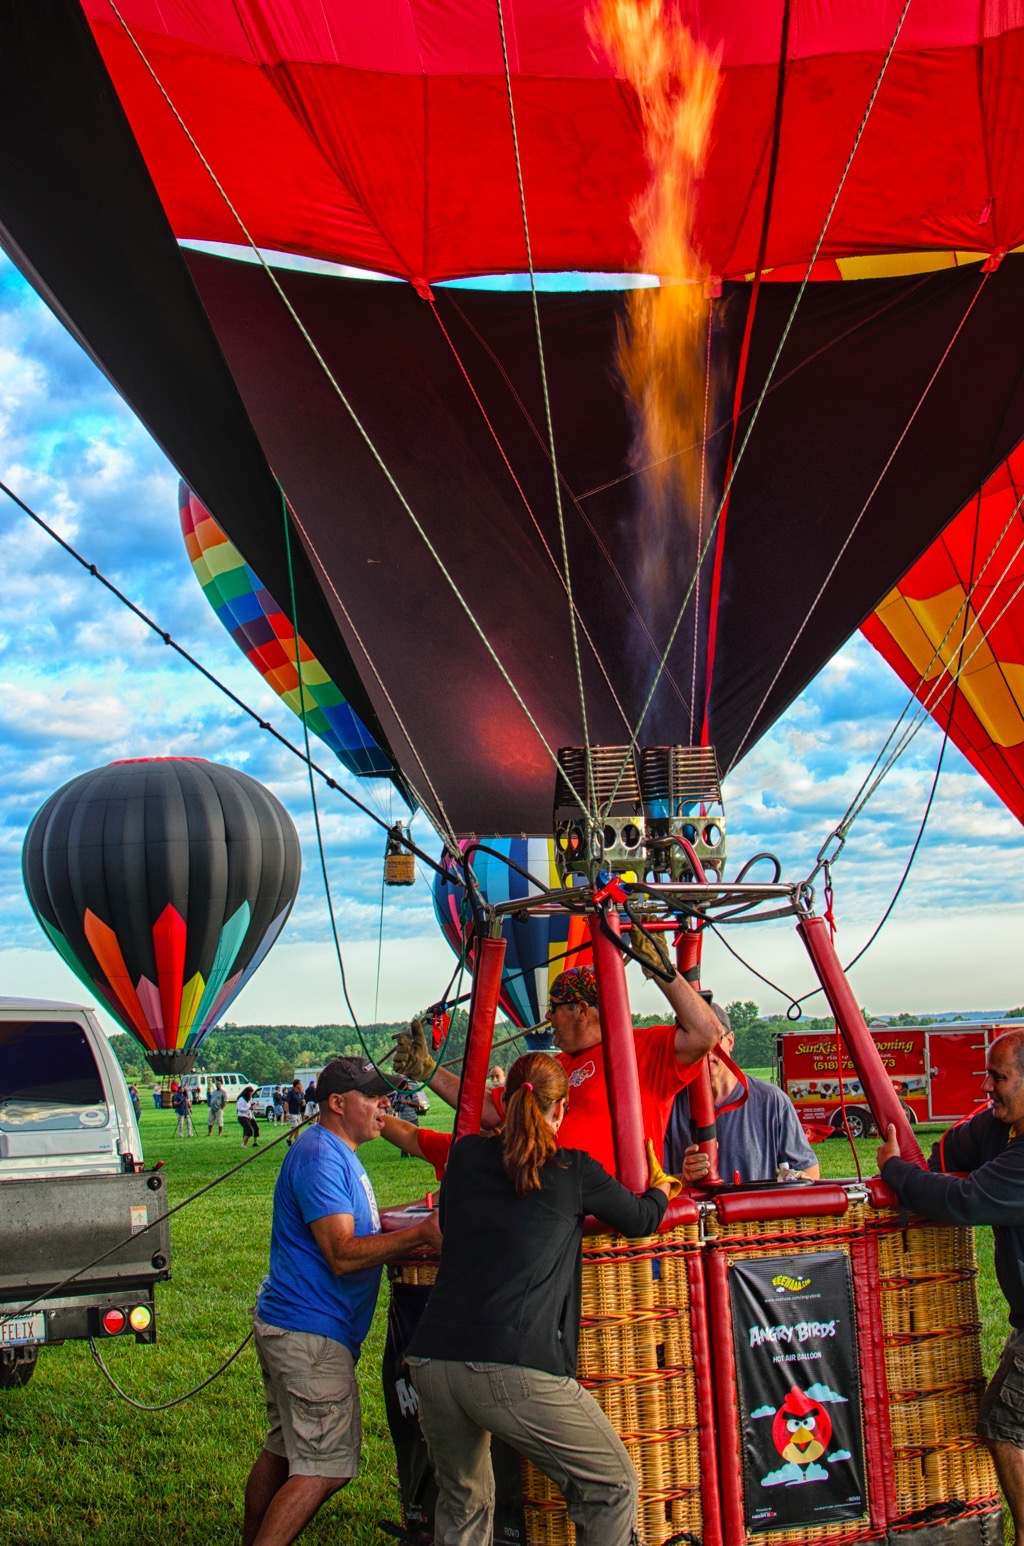 32nd annual New Jersey Festival of Ballooning 1406319649 4